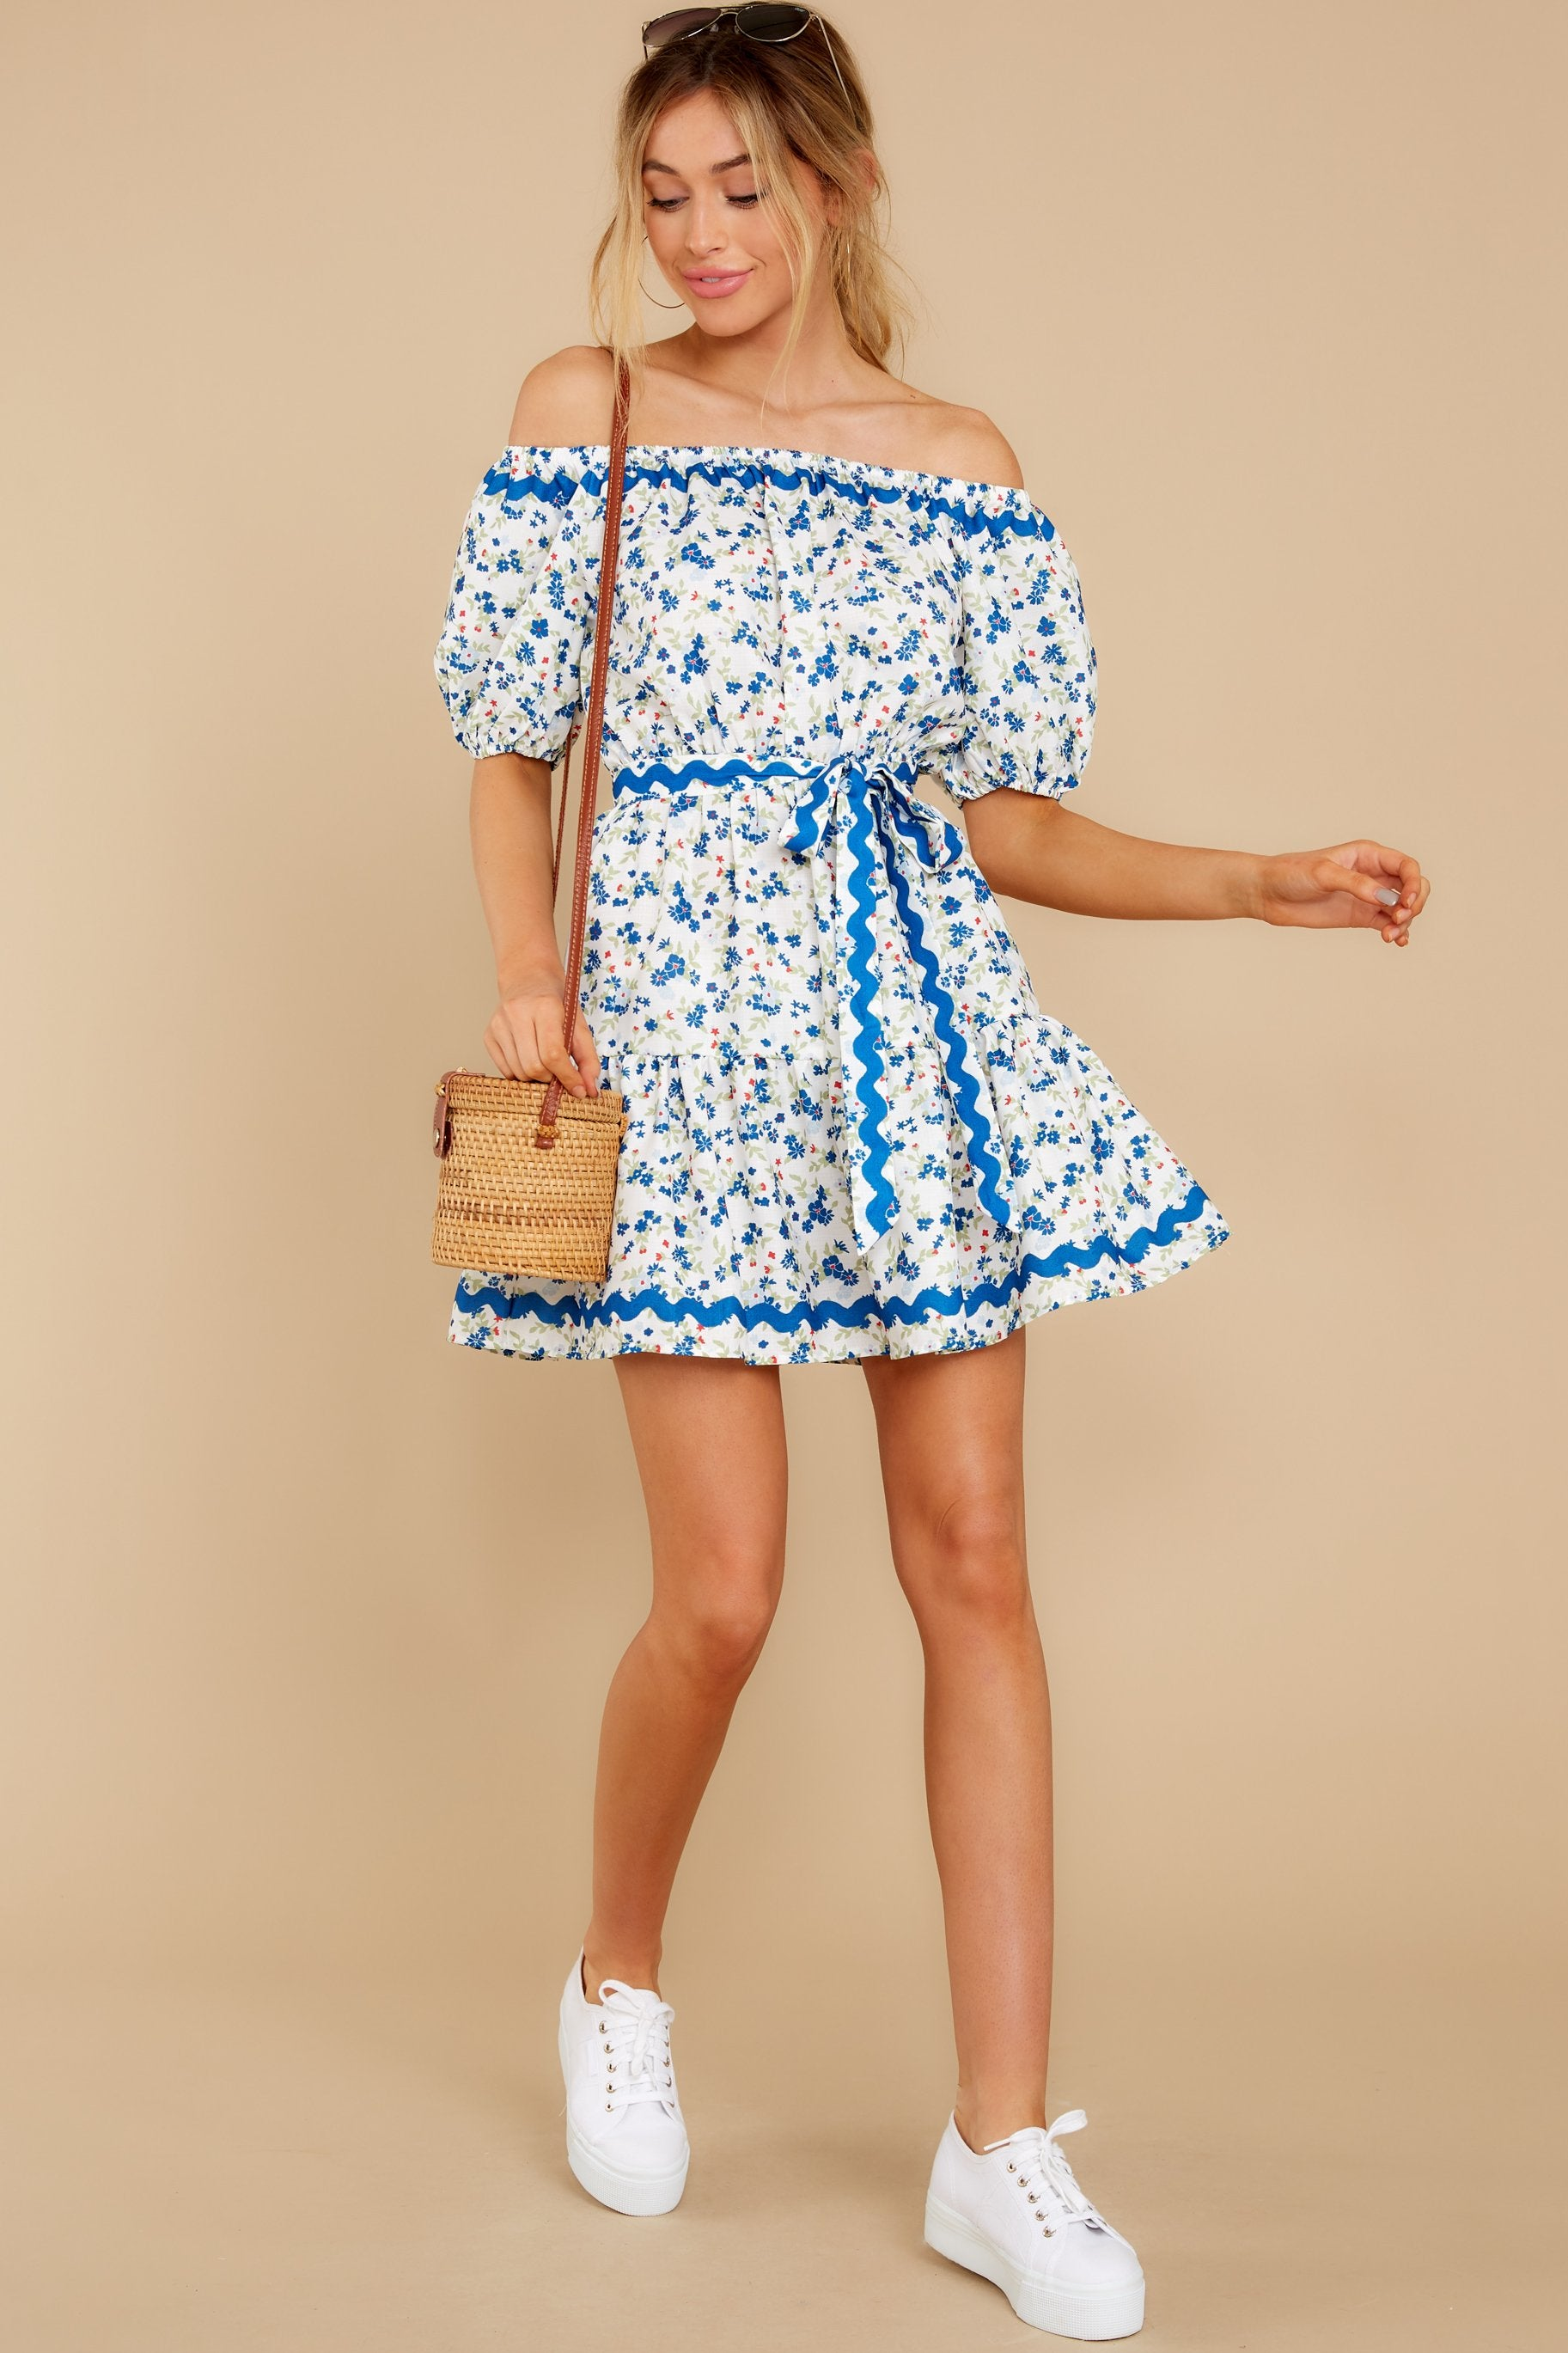 3 Happy About It Blue Floral Print Off The Shoulder Dress at reddress.com